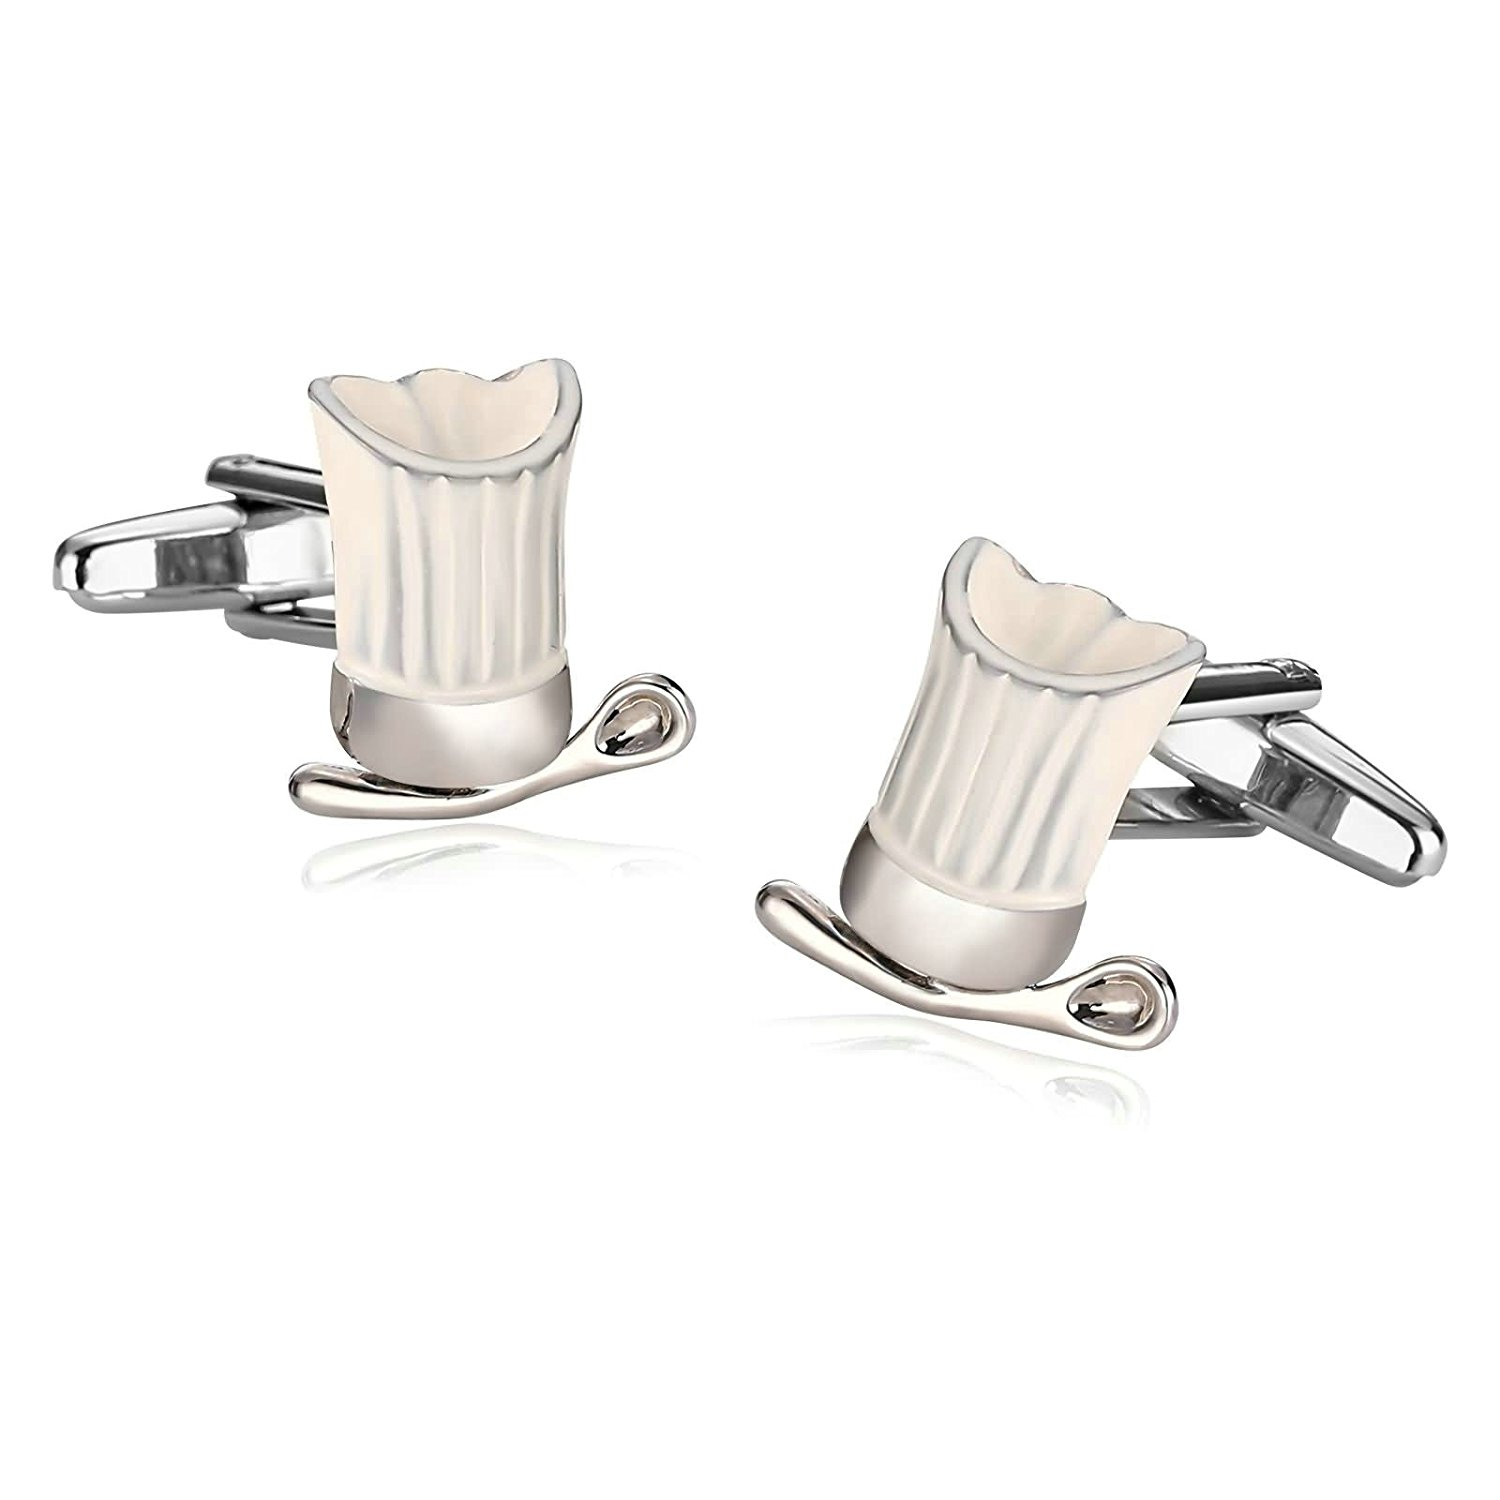 Aooaz Cufflinks for Men Stainless Steel [4 Style] Mens Cufflinks 2Pcs, Novelty Shirt Cufflinks, Size X